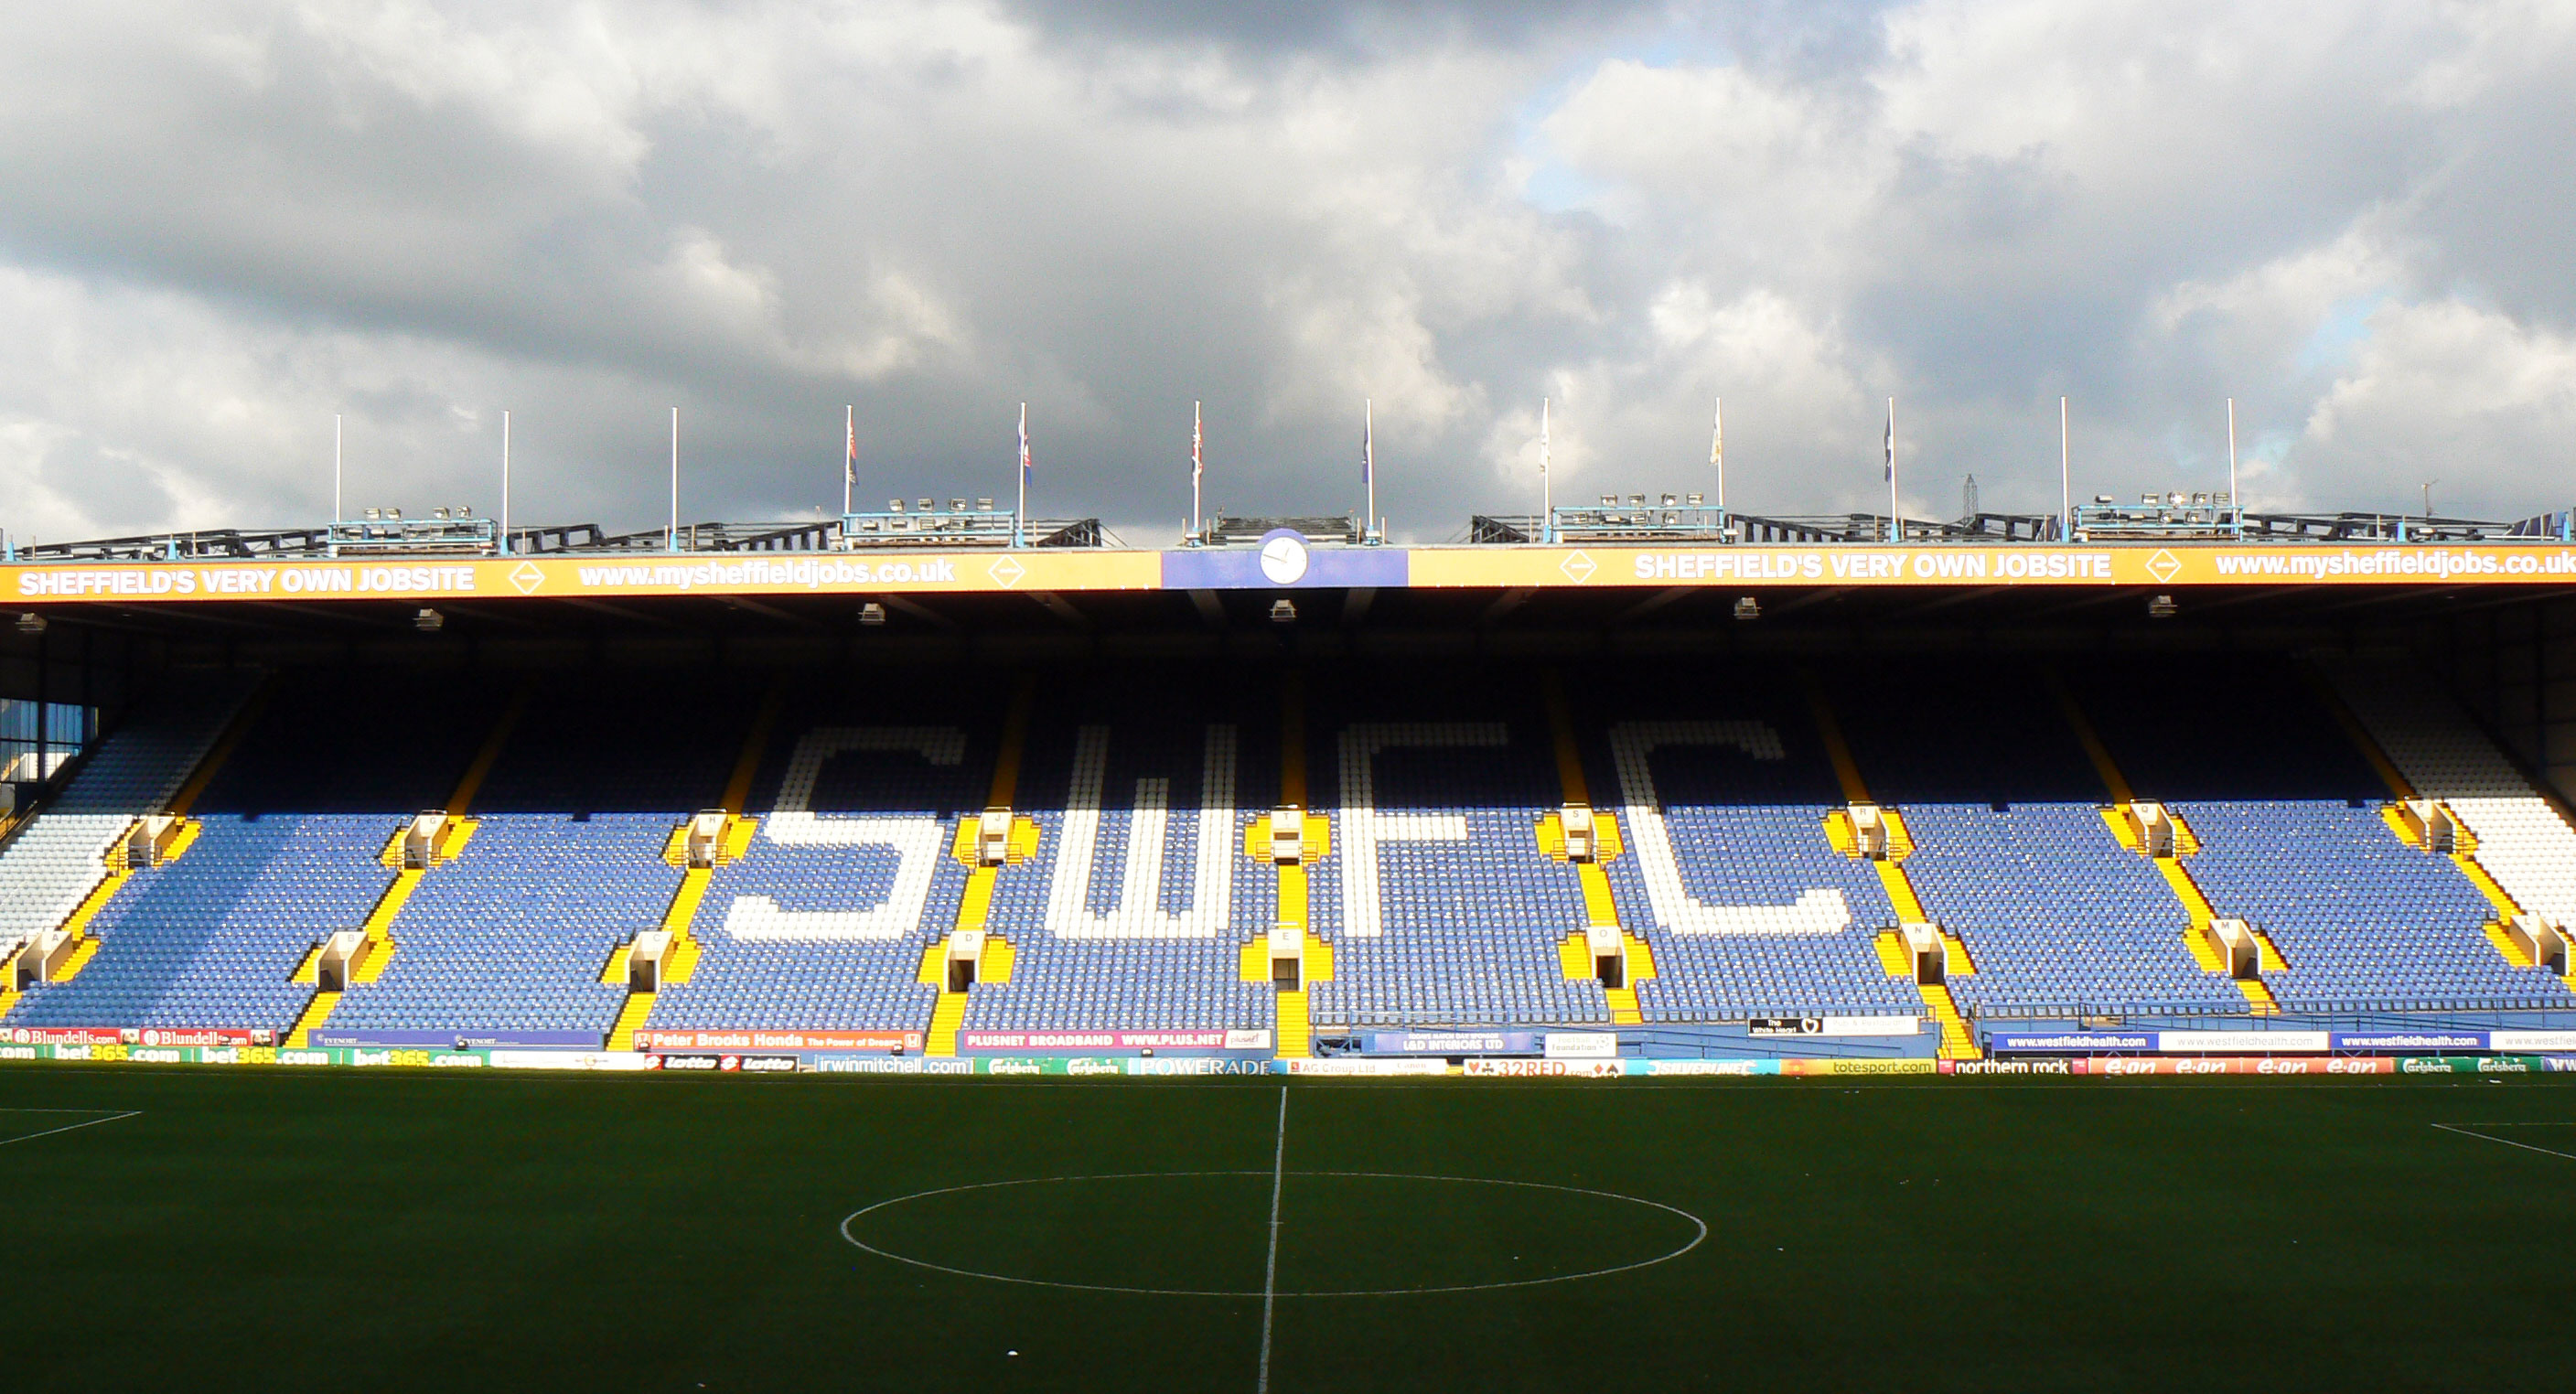 Hillsborough-North-Stand-08.jpg